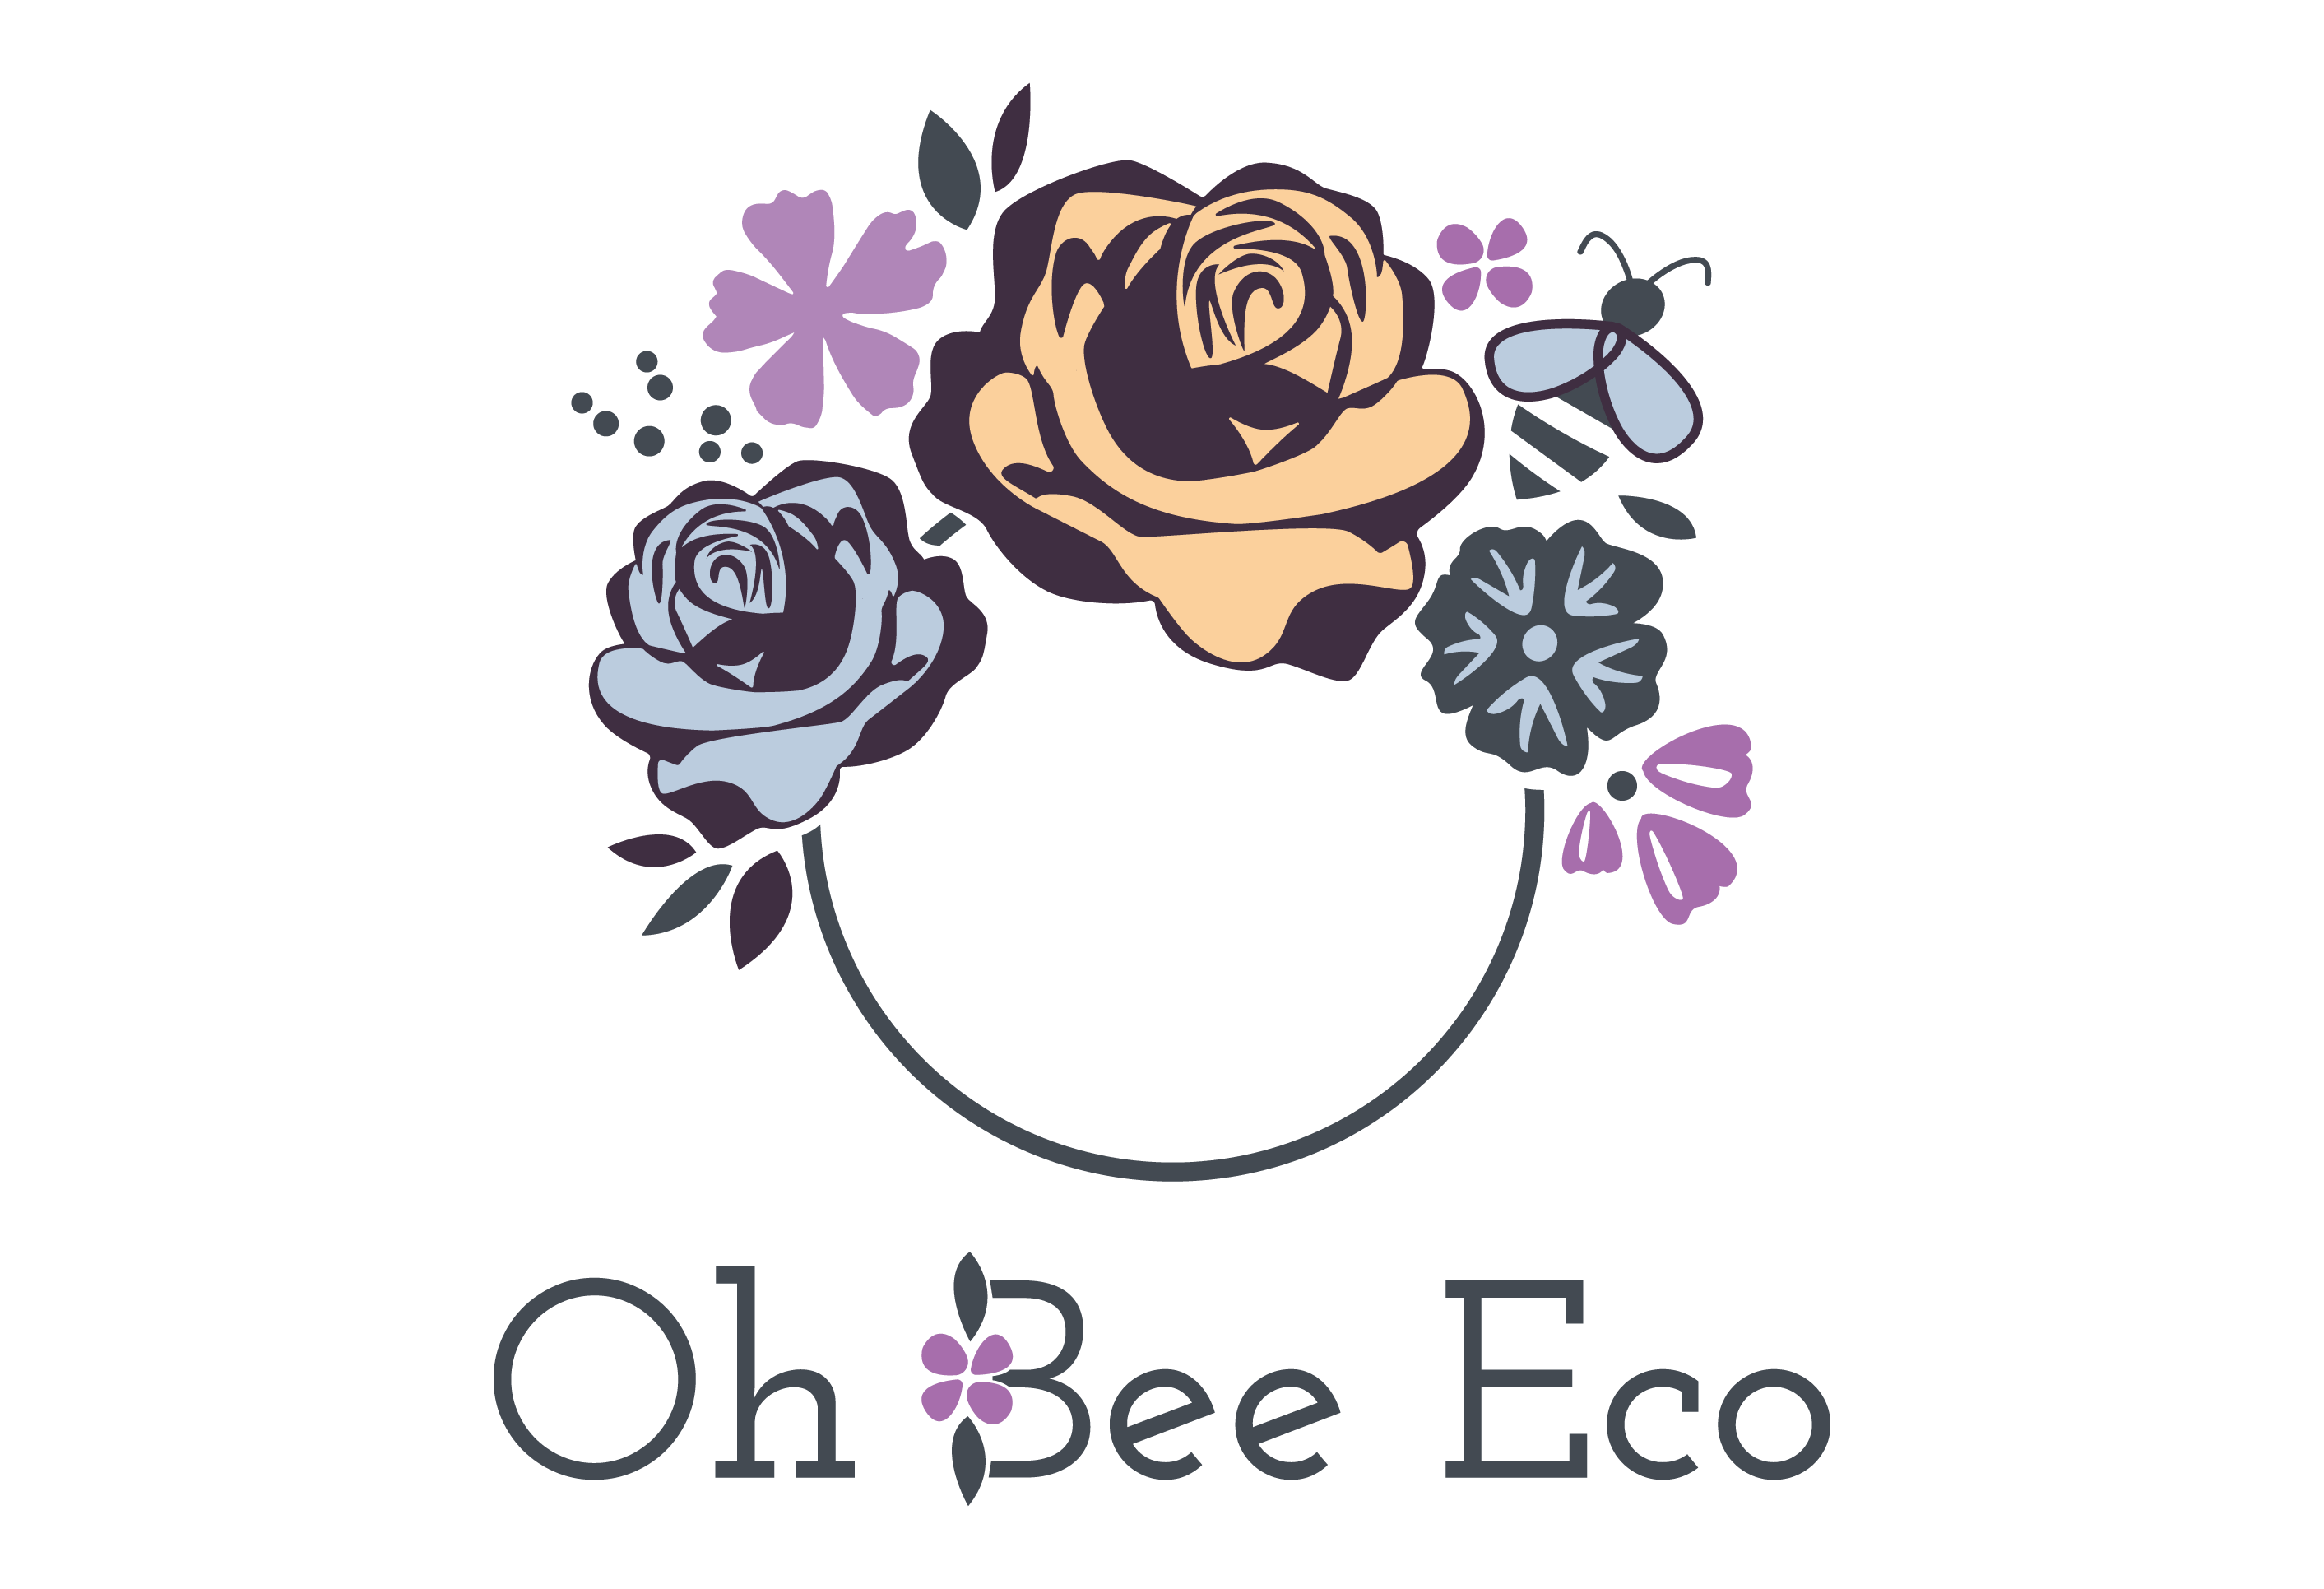 Oh Bee Eco